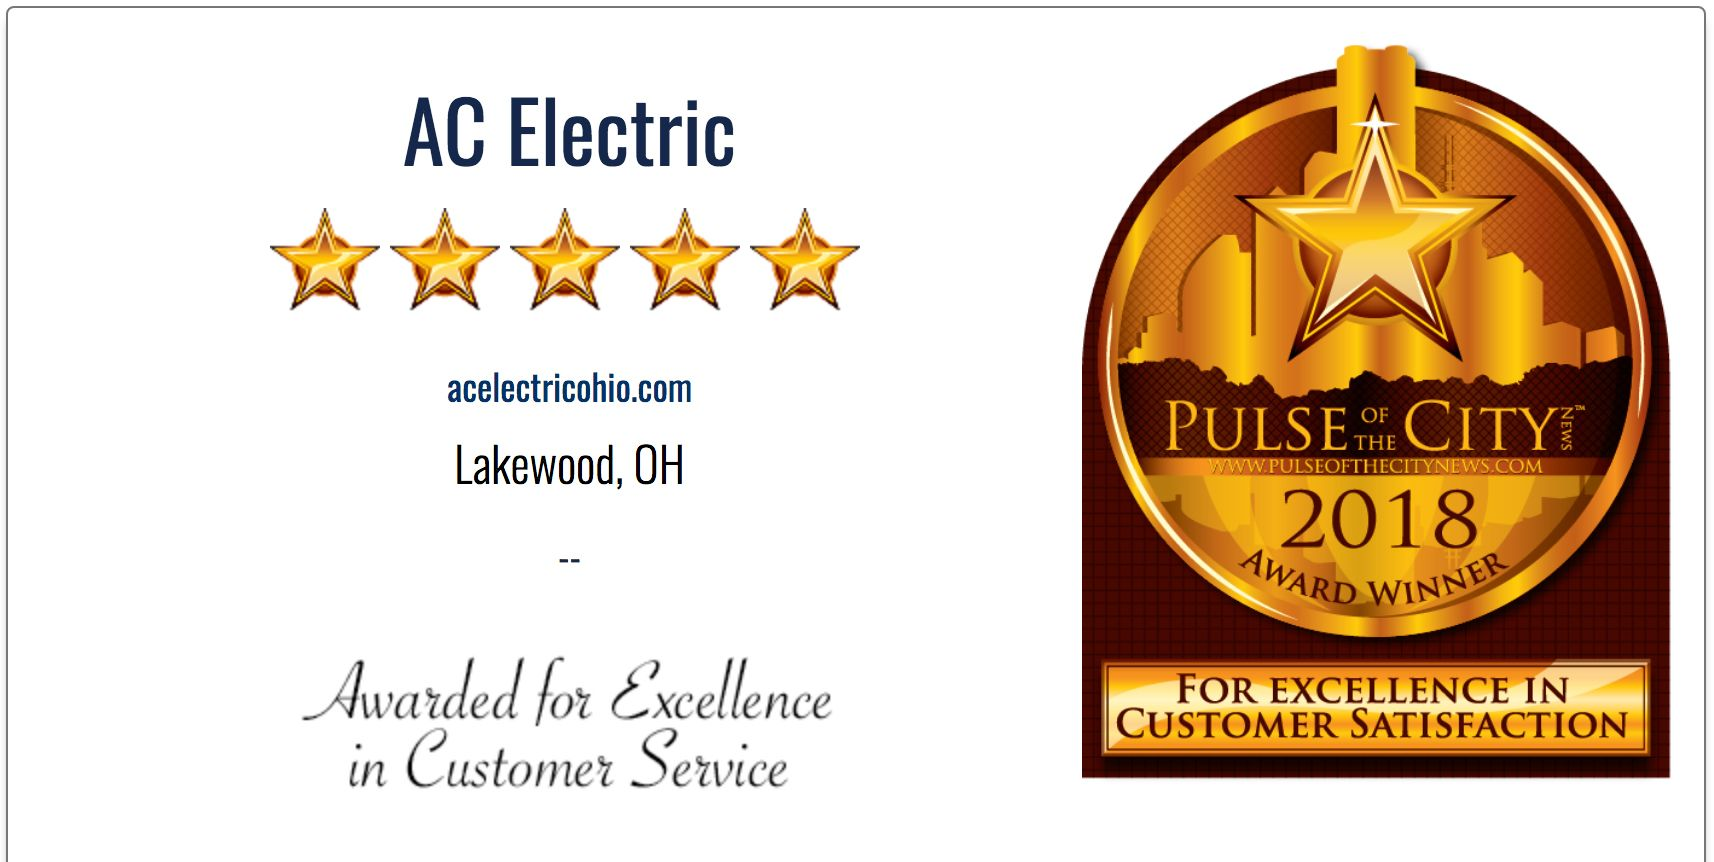 AC Electric Award